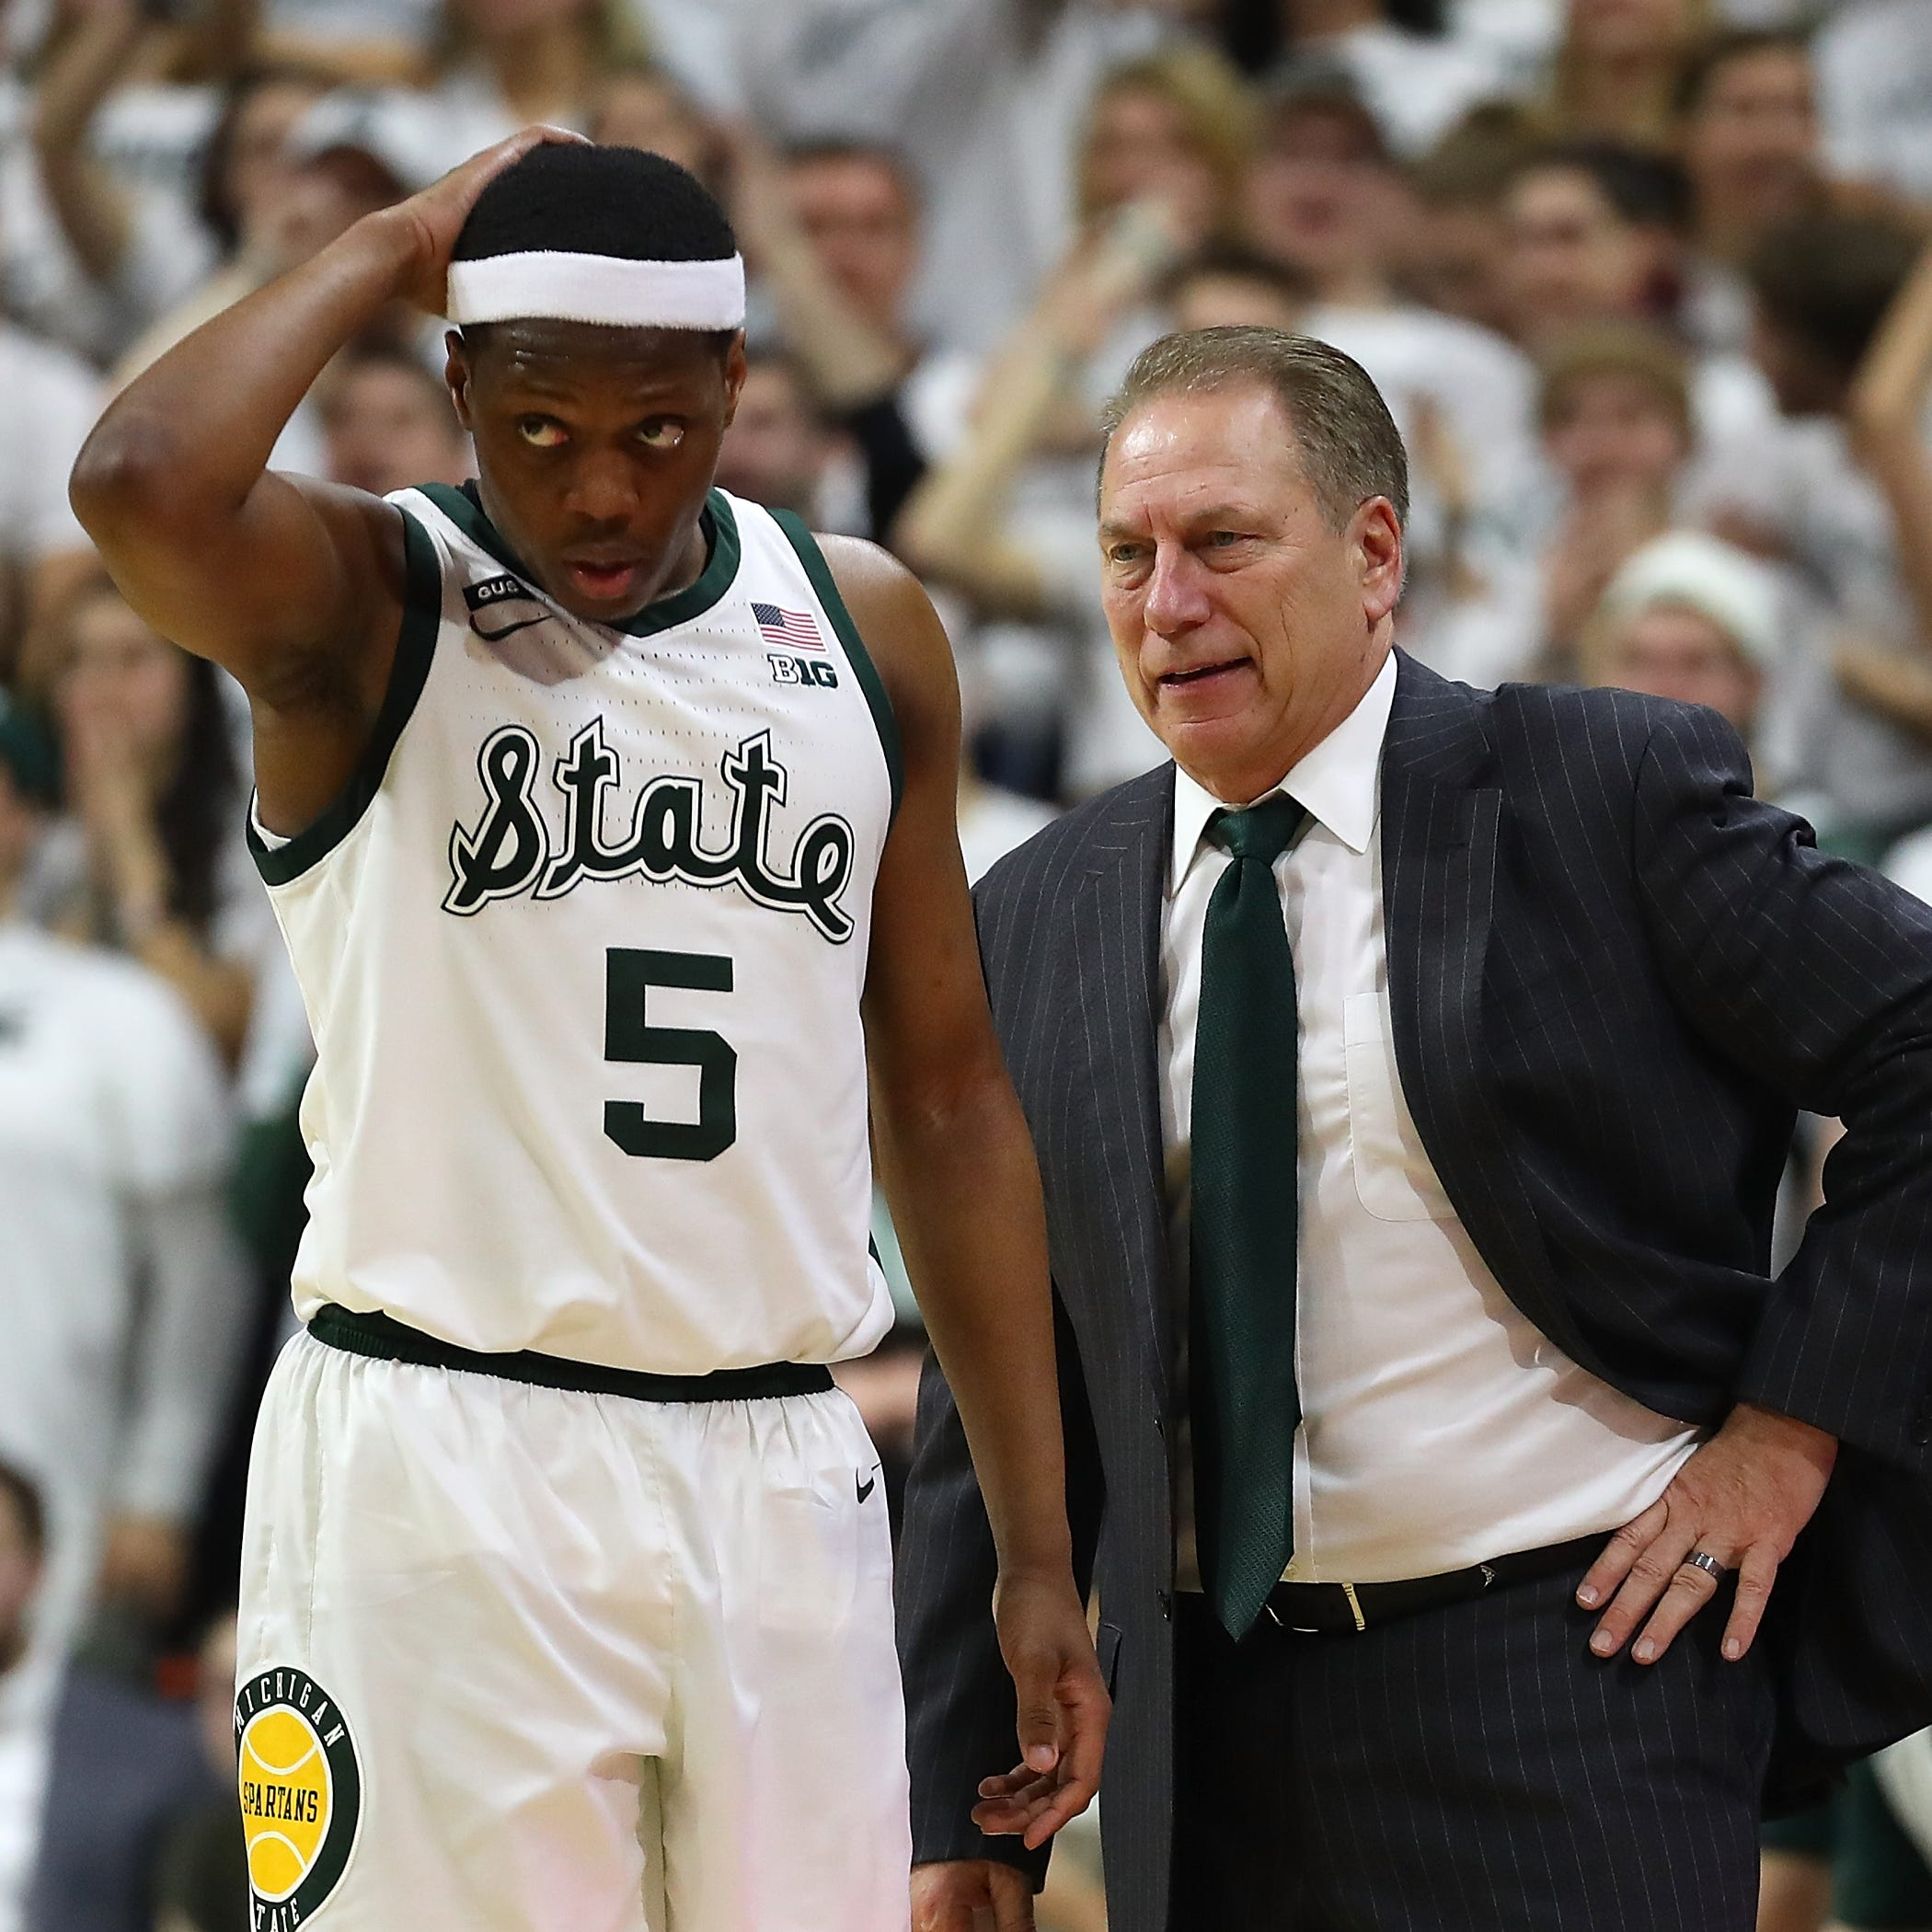 Time for Tom Izzo to reclaim March as his month. Saturday was a start